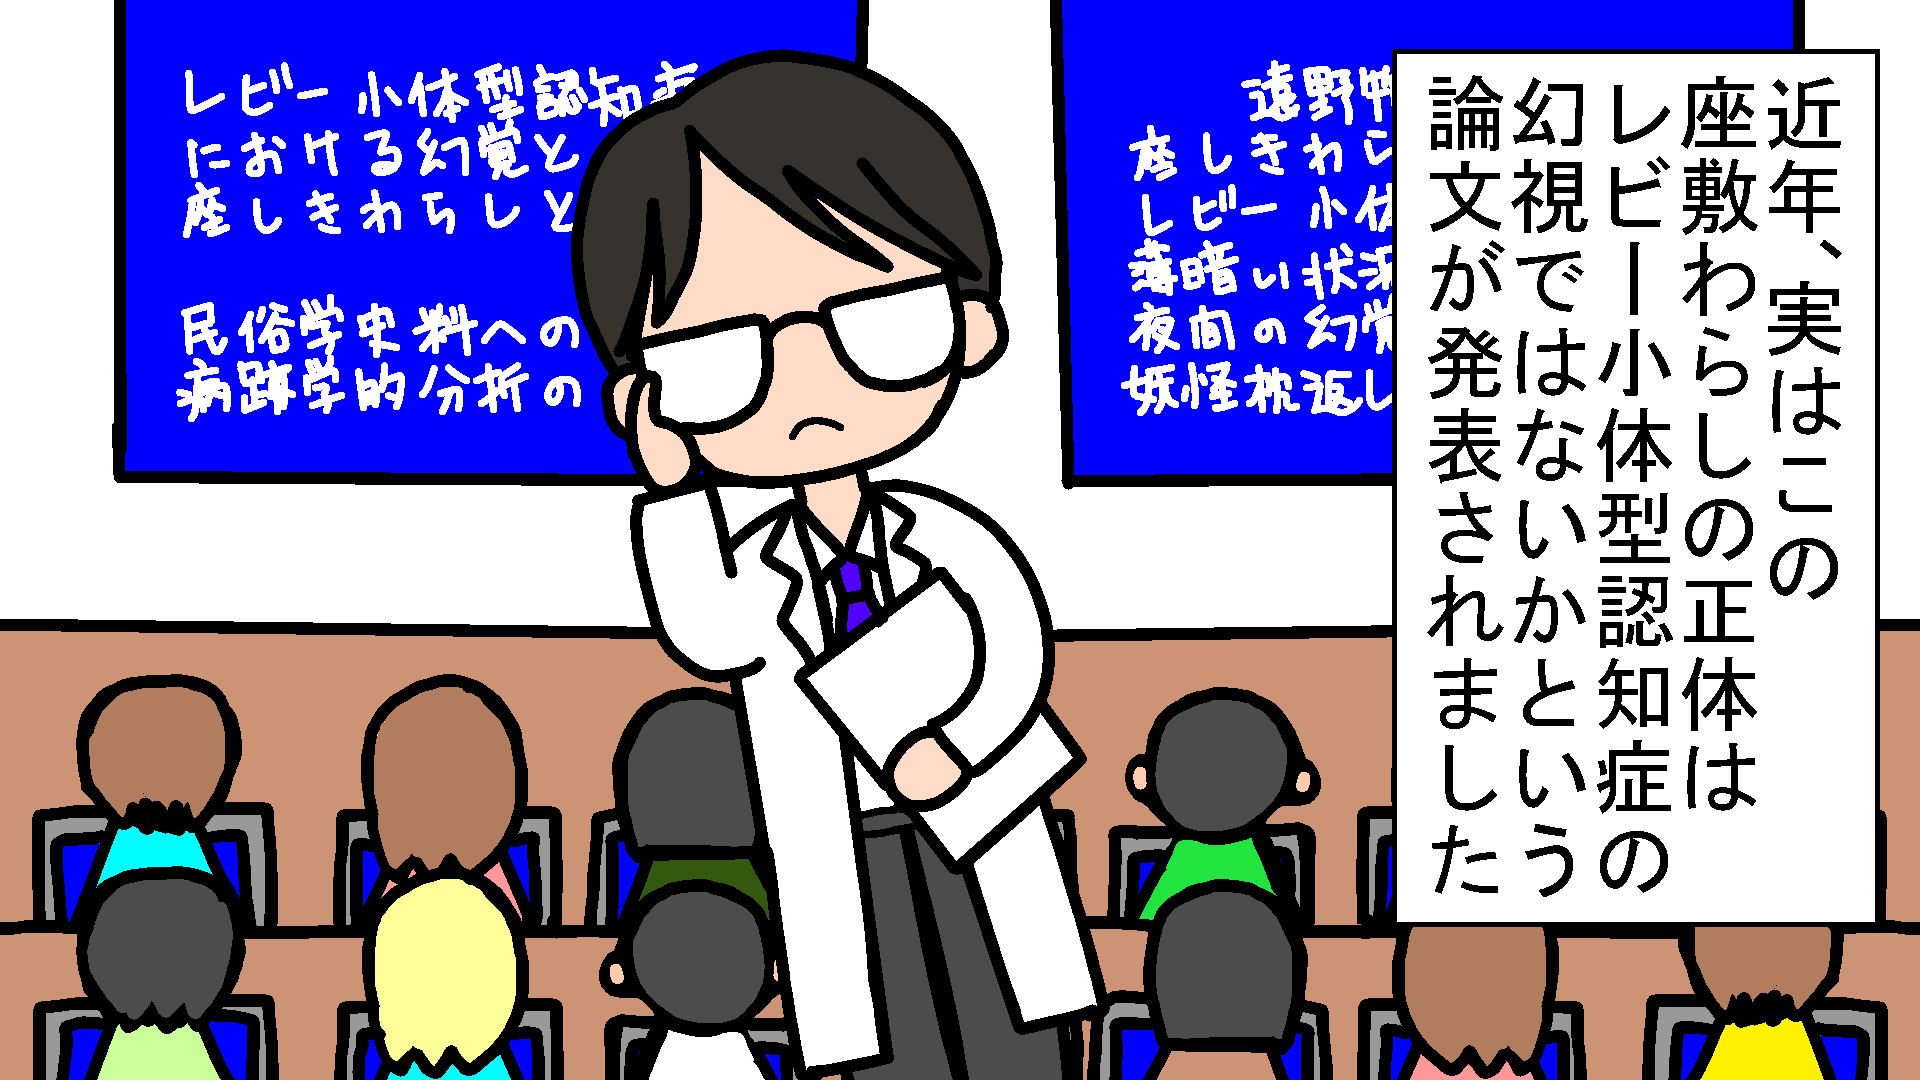 youtubeの挿絵(座敷わらし)_a0040621_20143379.png